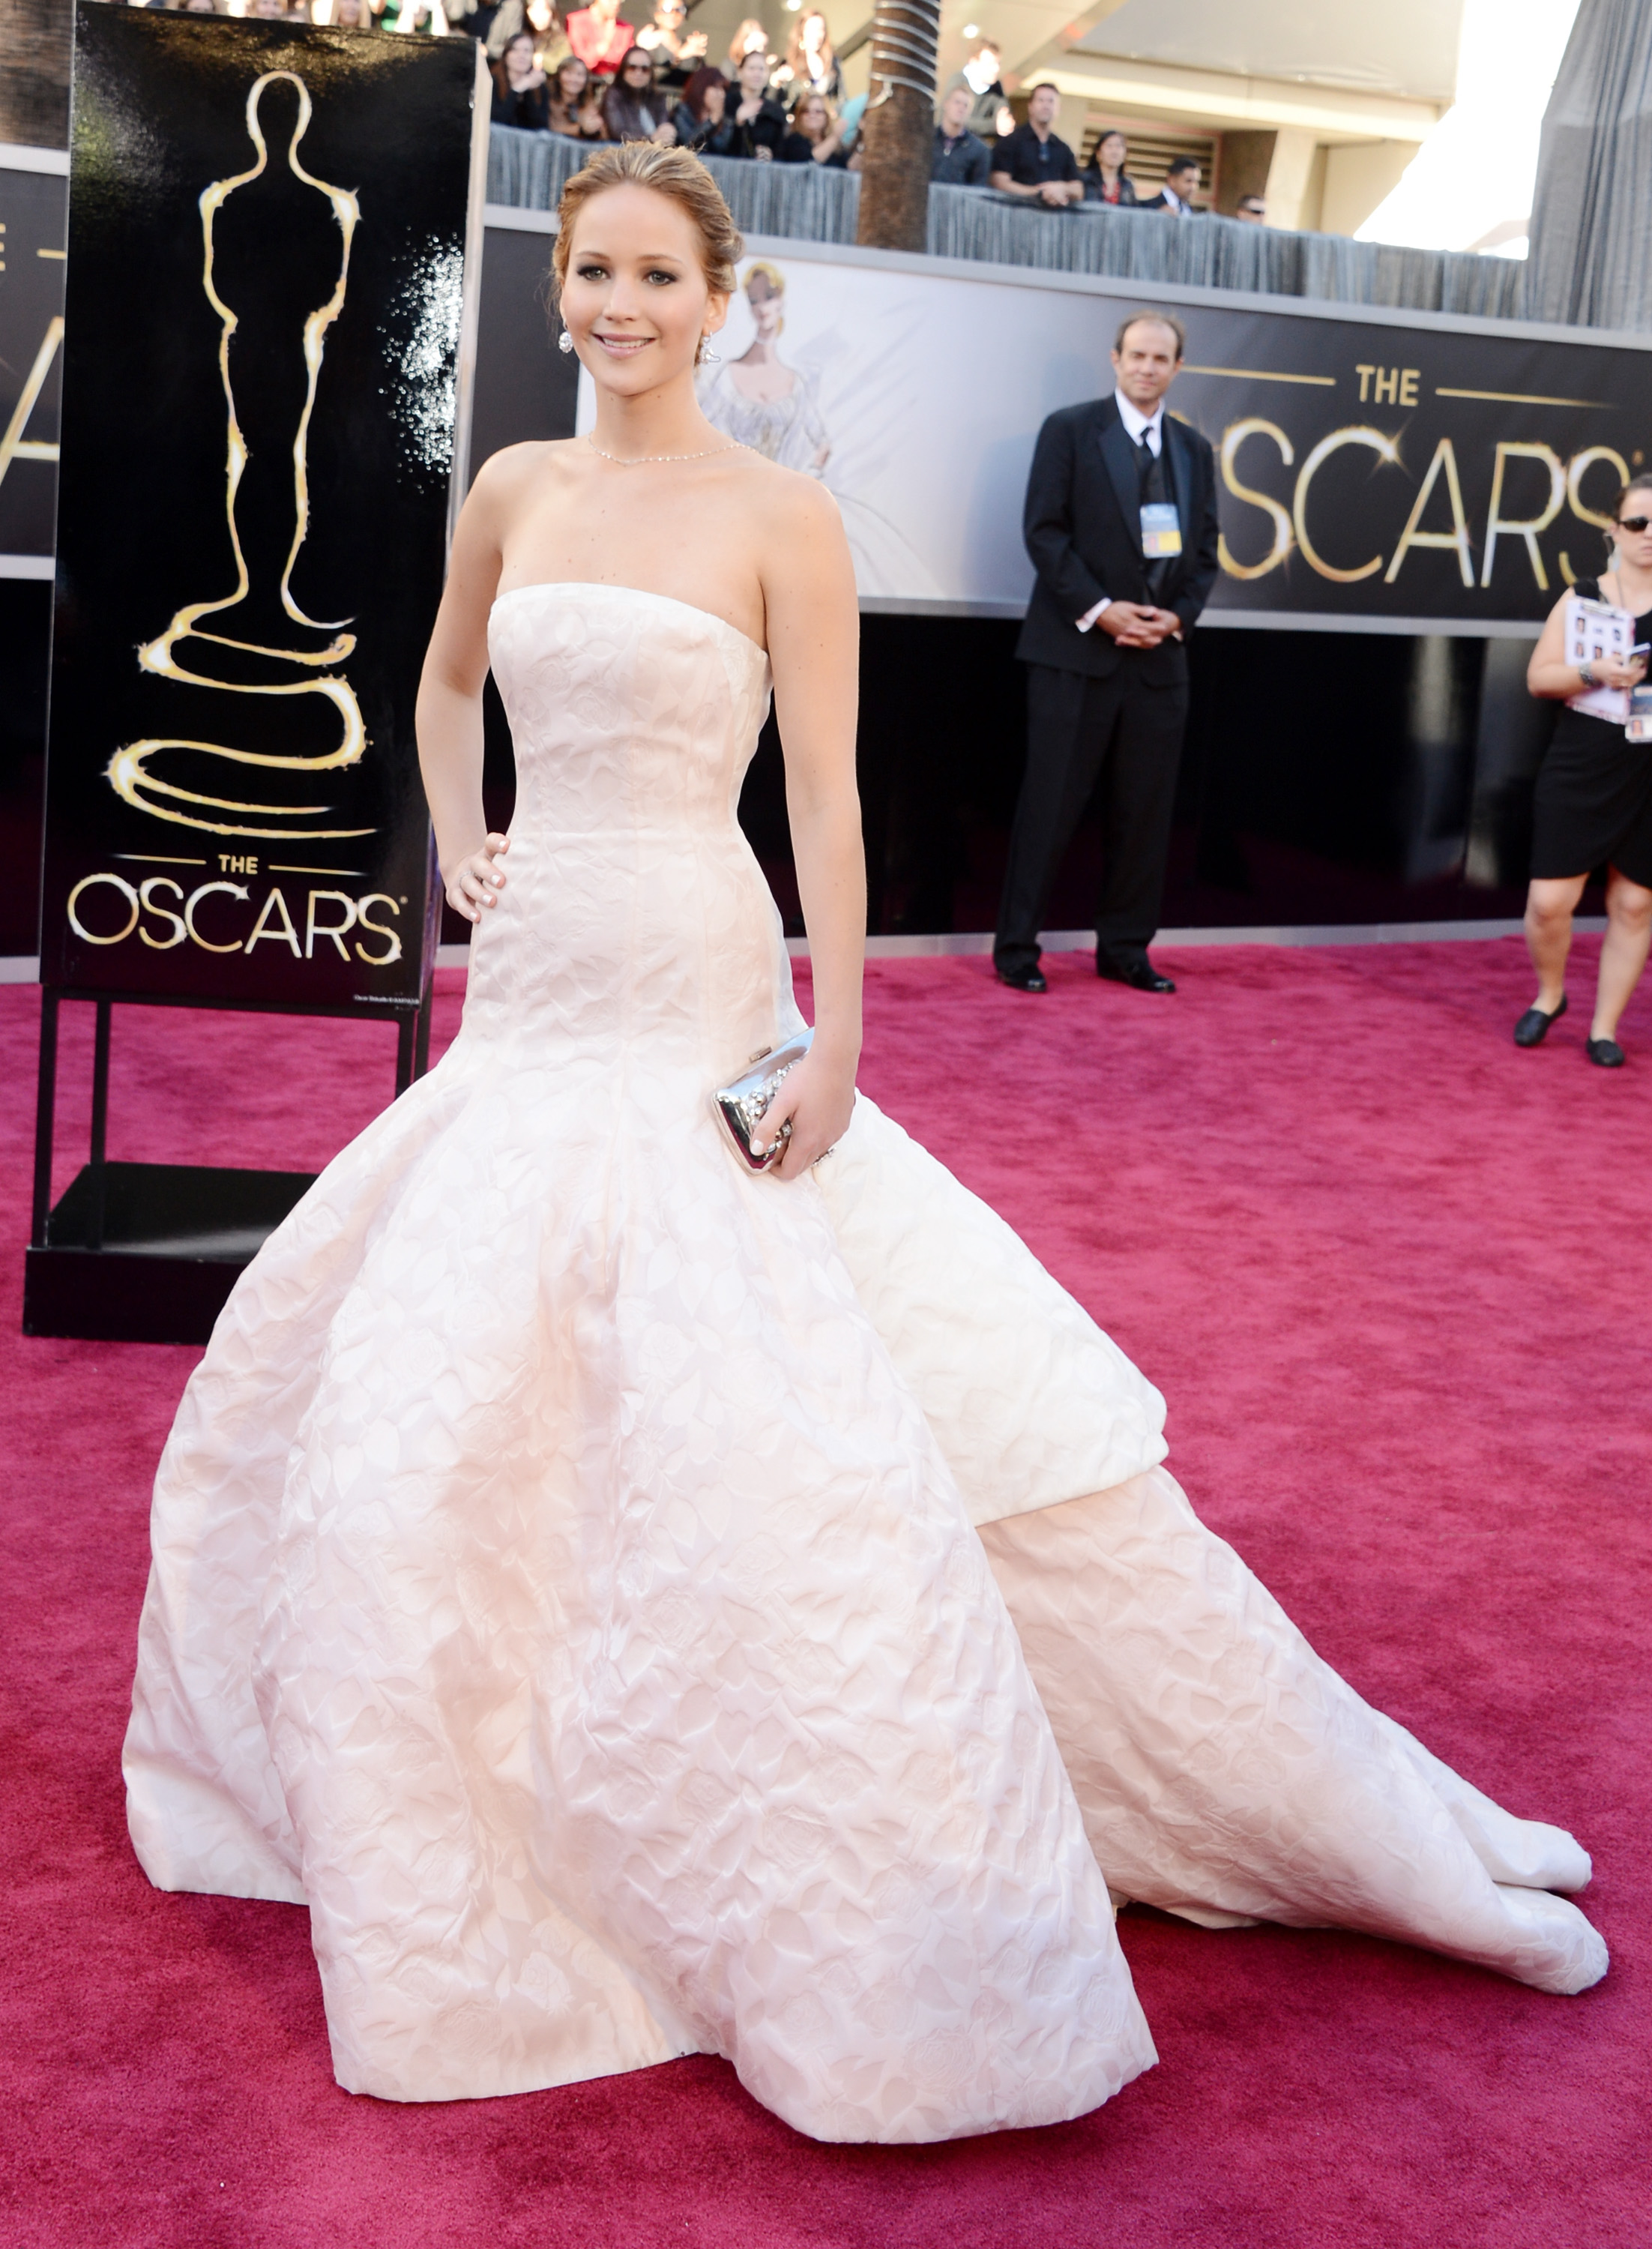 Jennifer Lawrence wore Dior on the red carpet at the Oscars 2013.